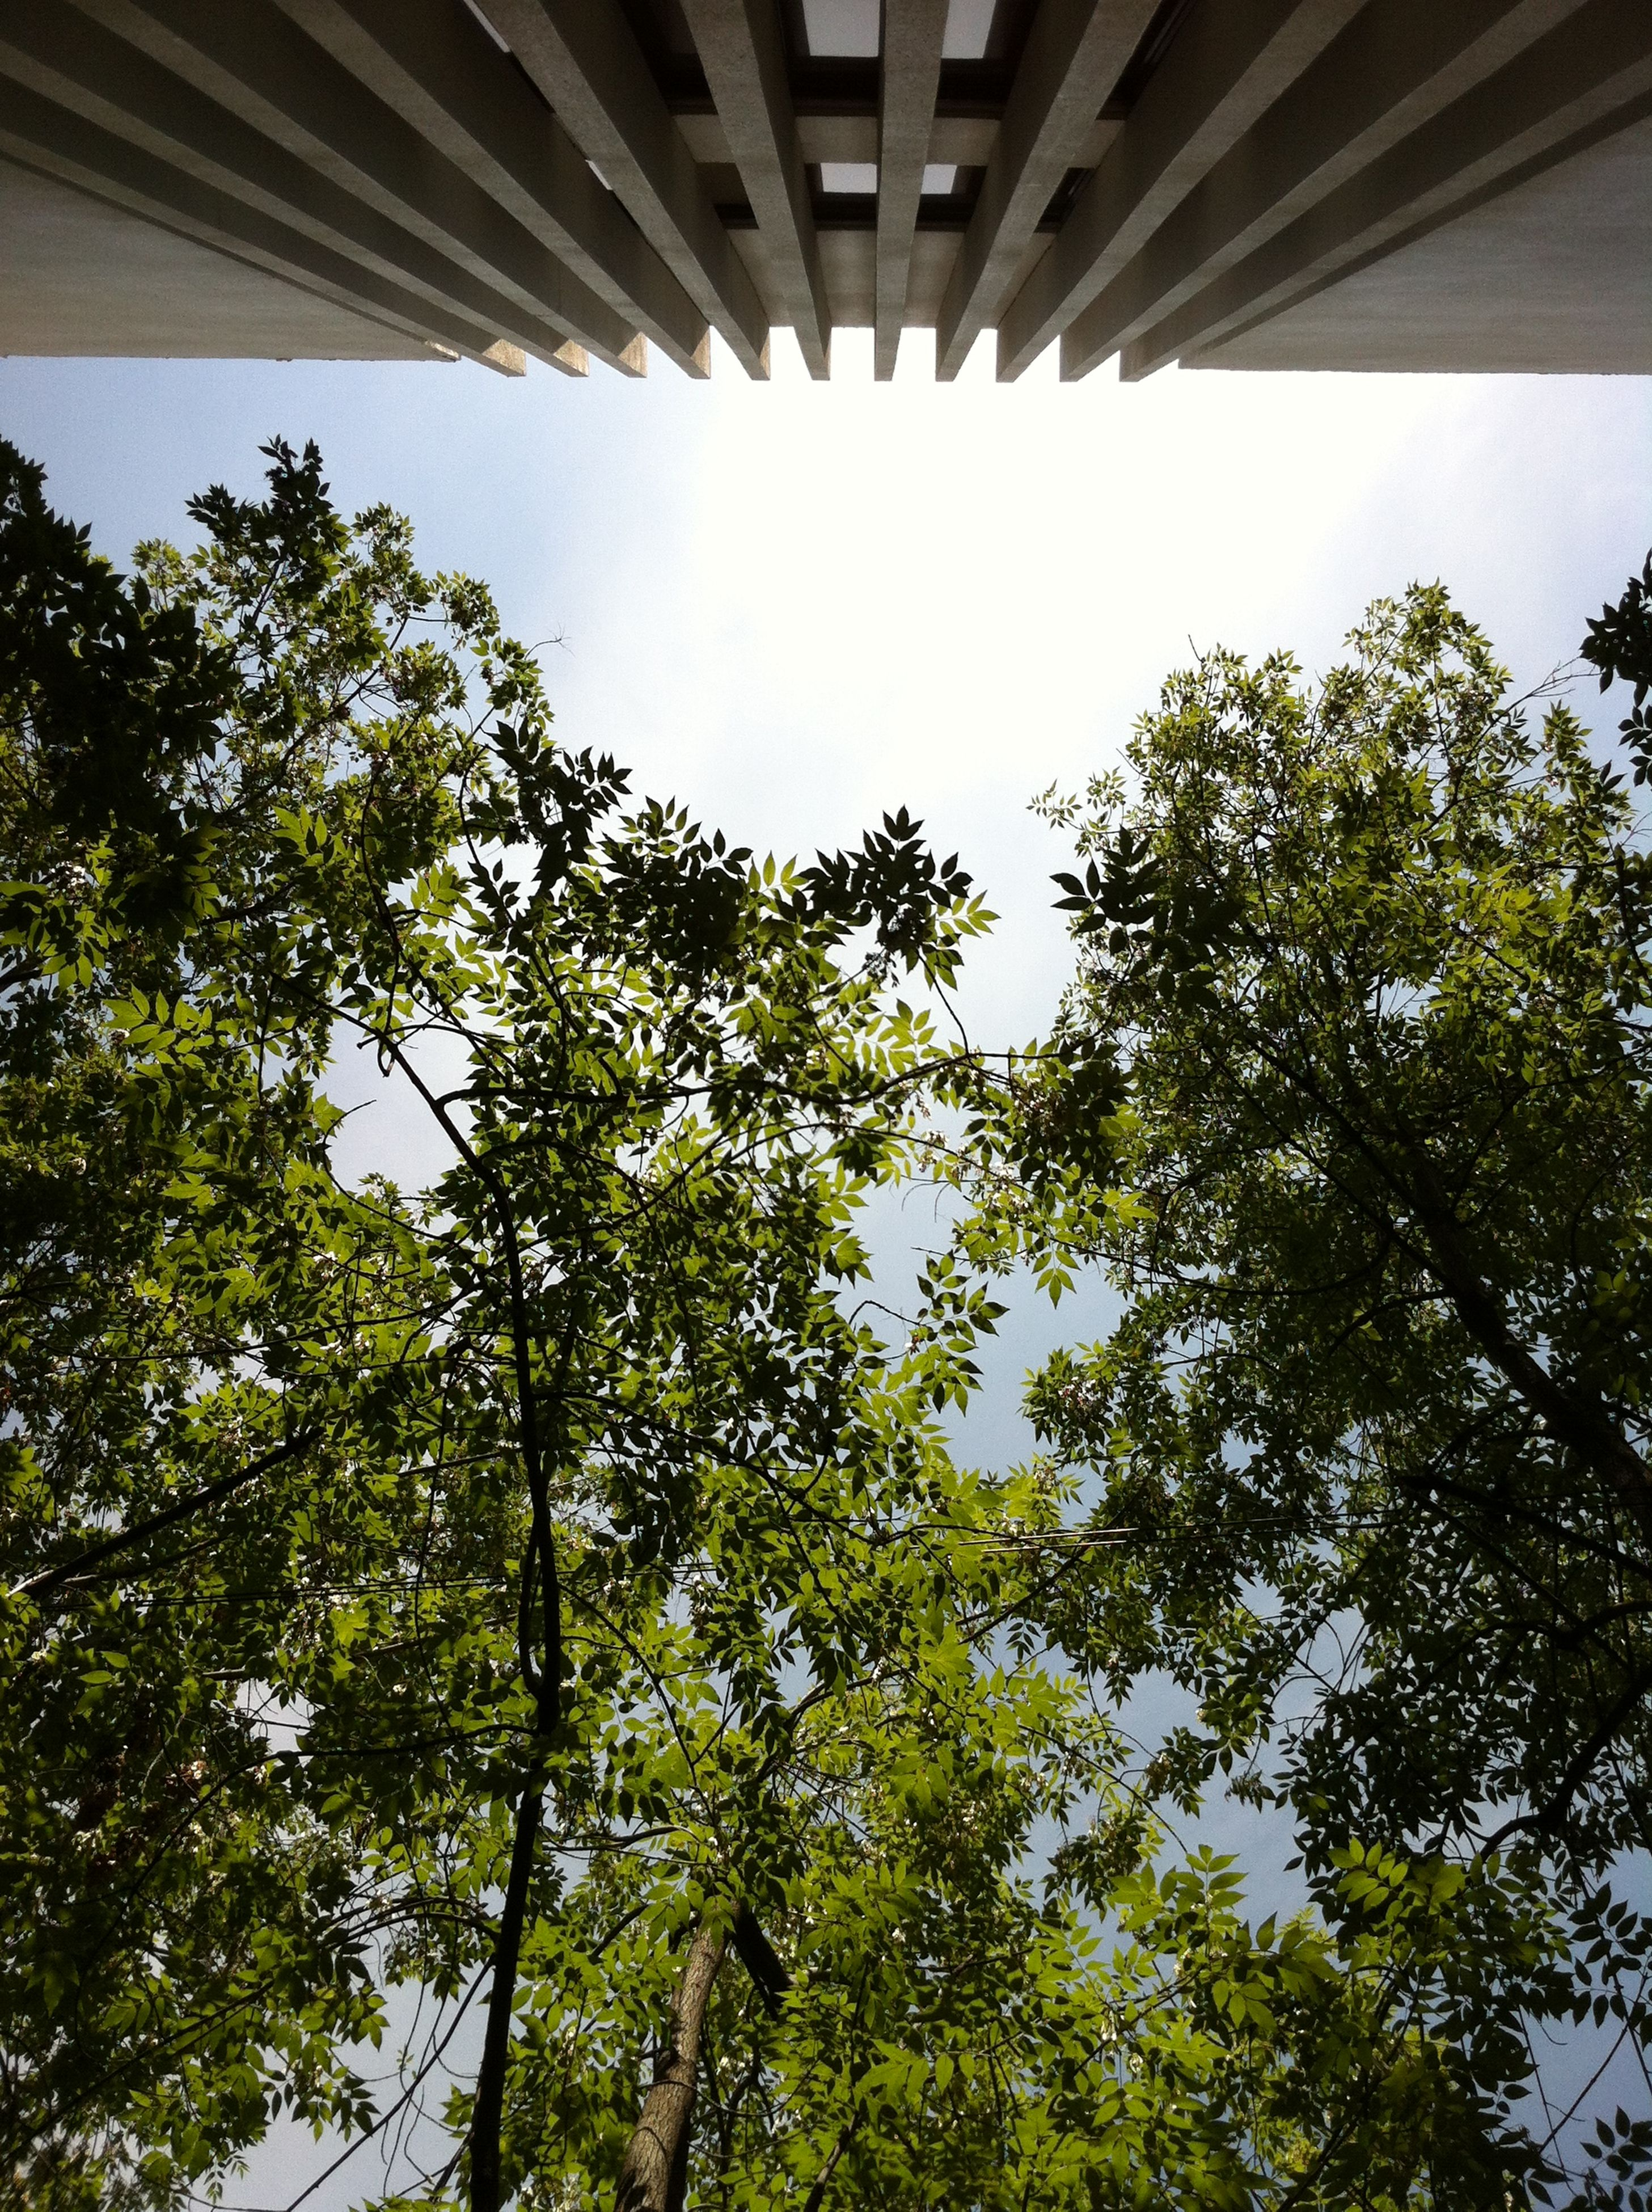 tree, low angle view, built structure, architecture, growth, building exterior, branch, sky, nature, clear sky, green color, day, no people, sunlight, outdoors, building, house, beauty in nature, tranquility, city